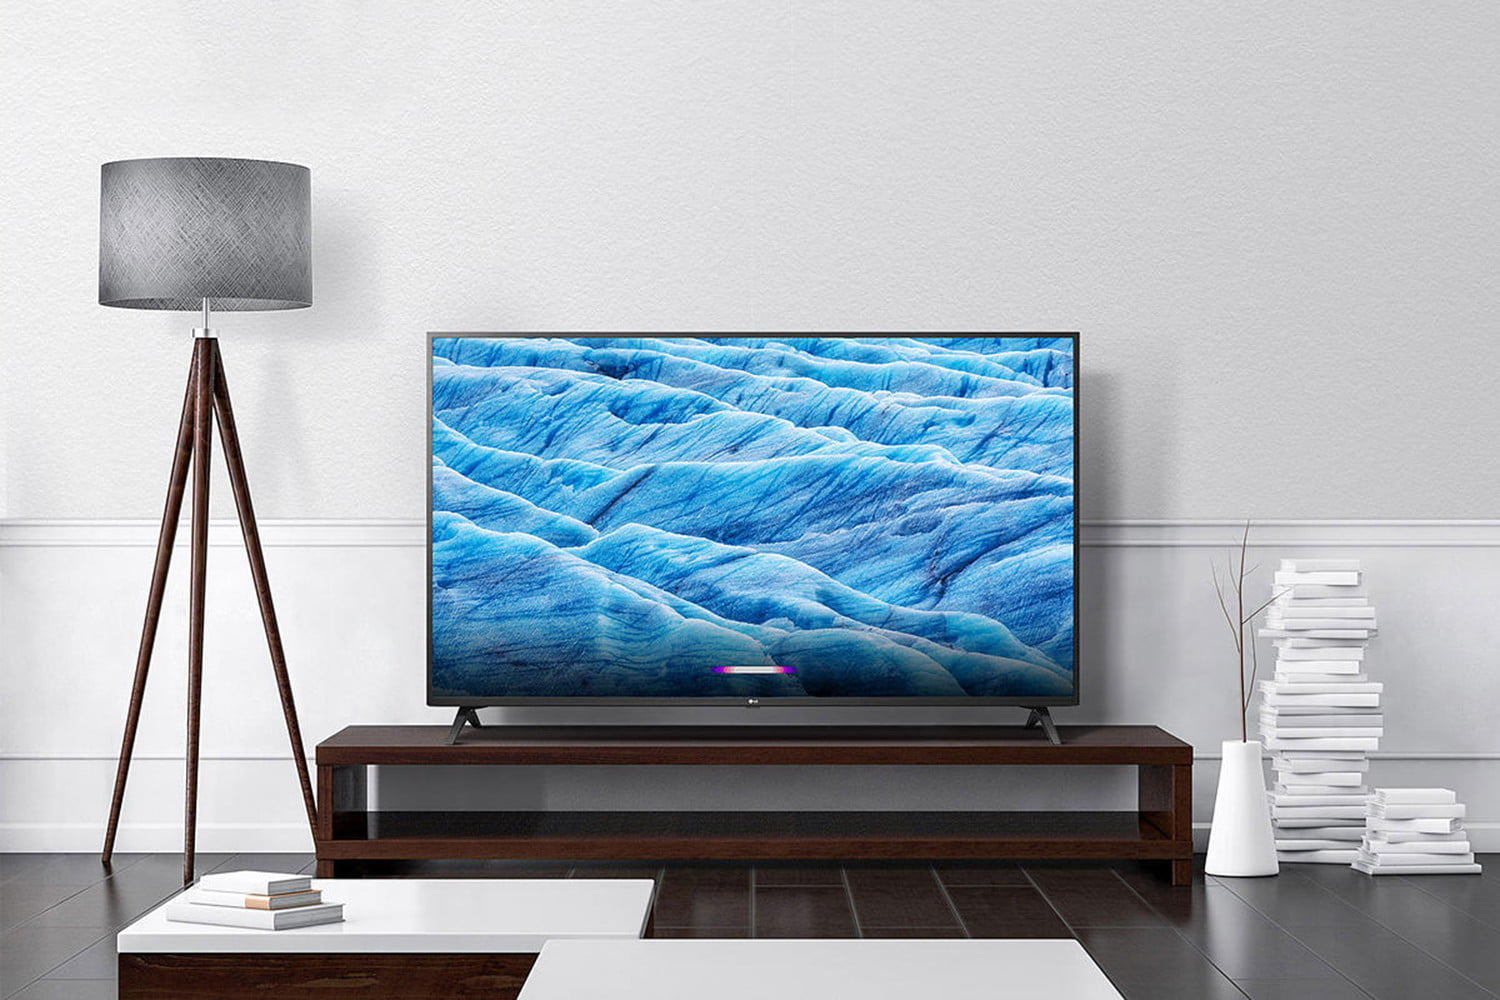 Black Friday is back with this fantastic deal on a 65-inch LG 4K TV